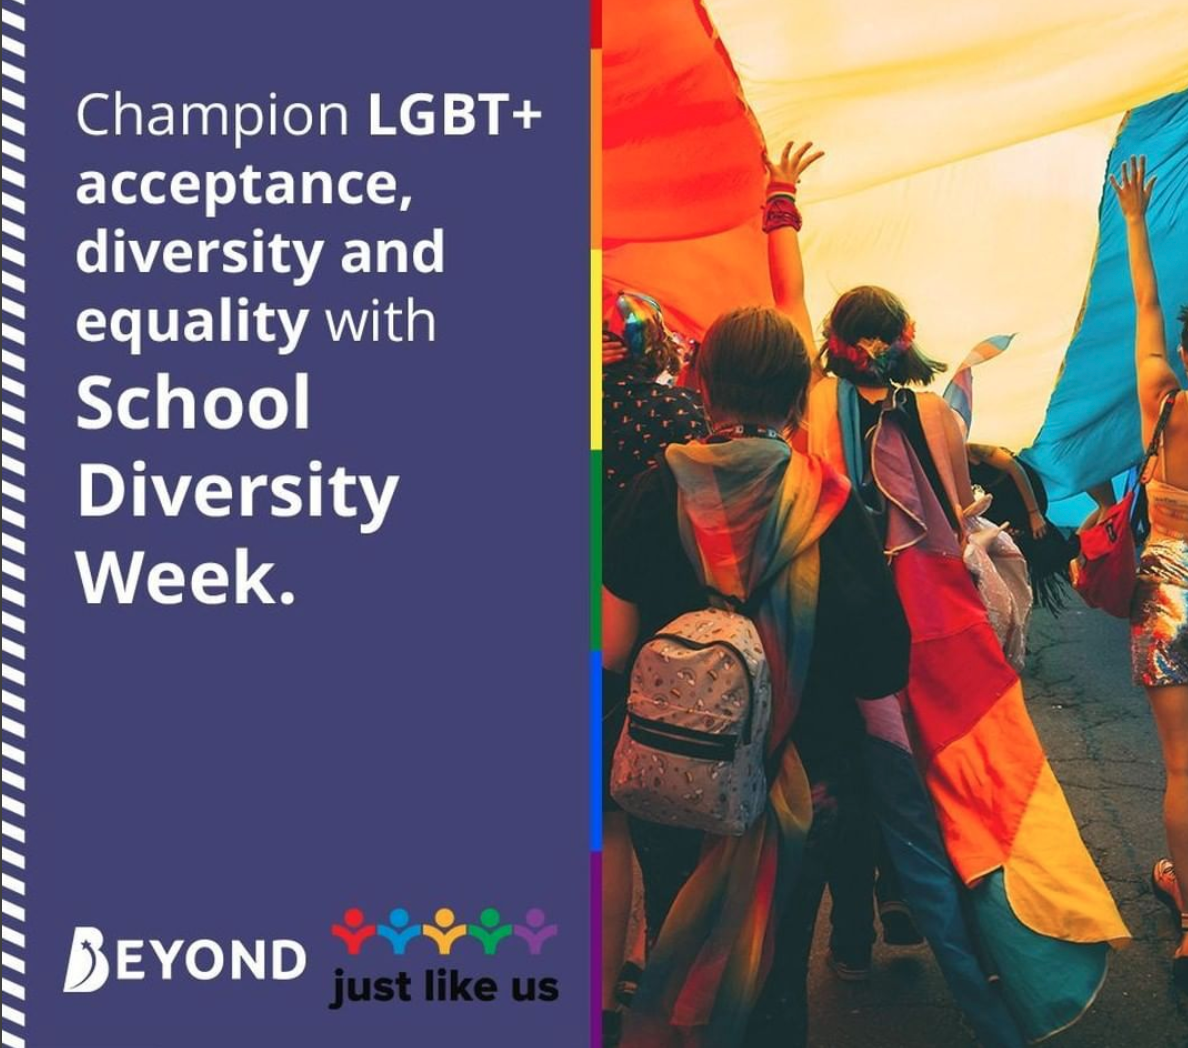 Just Like Us champions acceptance and equality in schools.